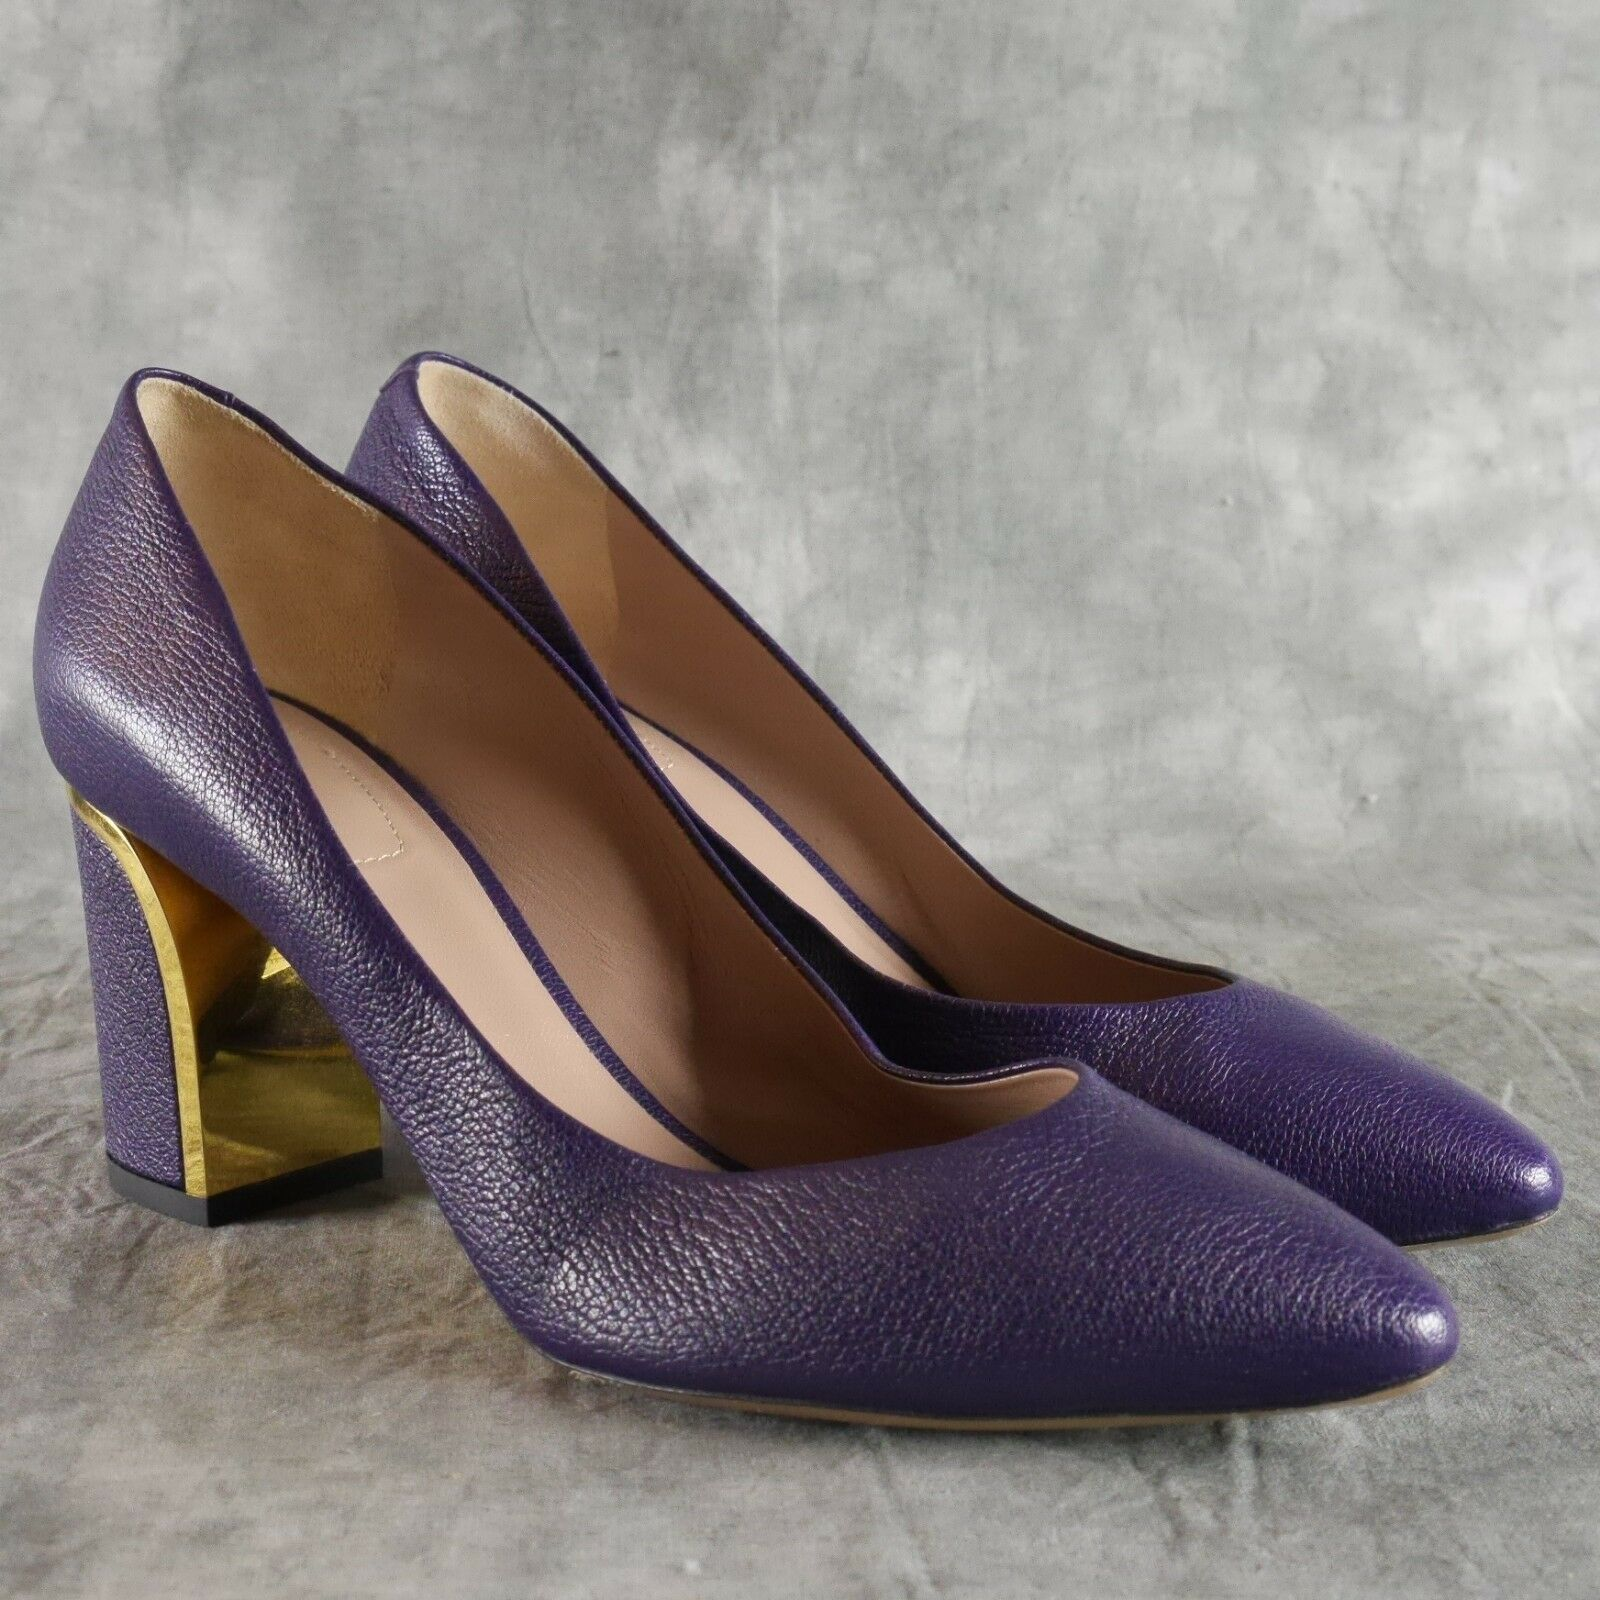 Chloe Rounded Pointed Toe Becky Purple Heels gold-tone trim Size 38 New  825 ANB